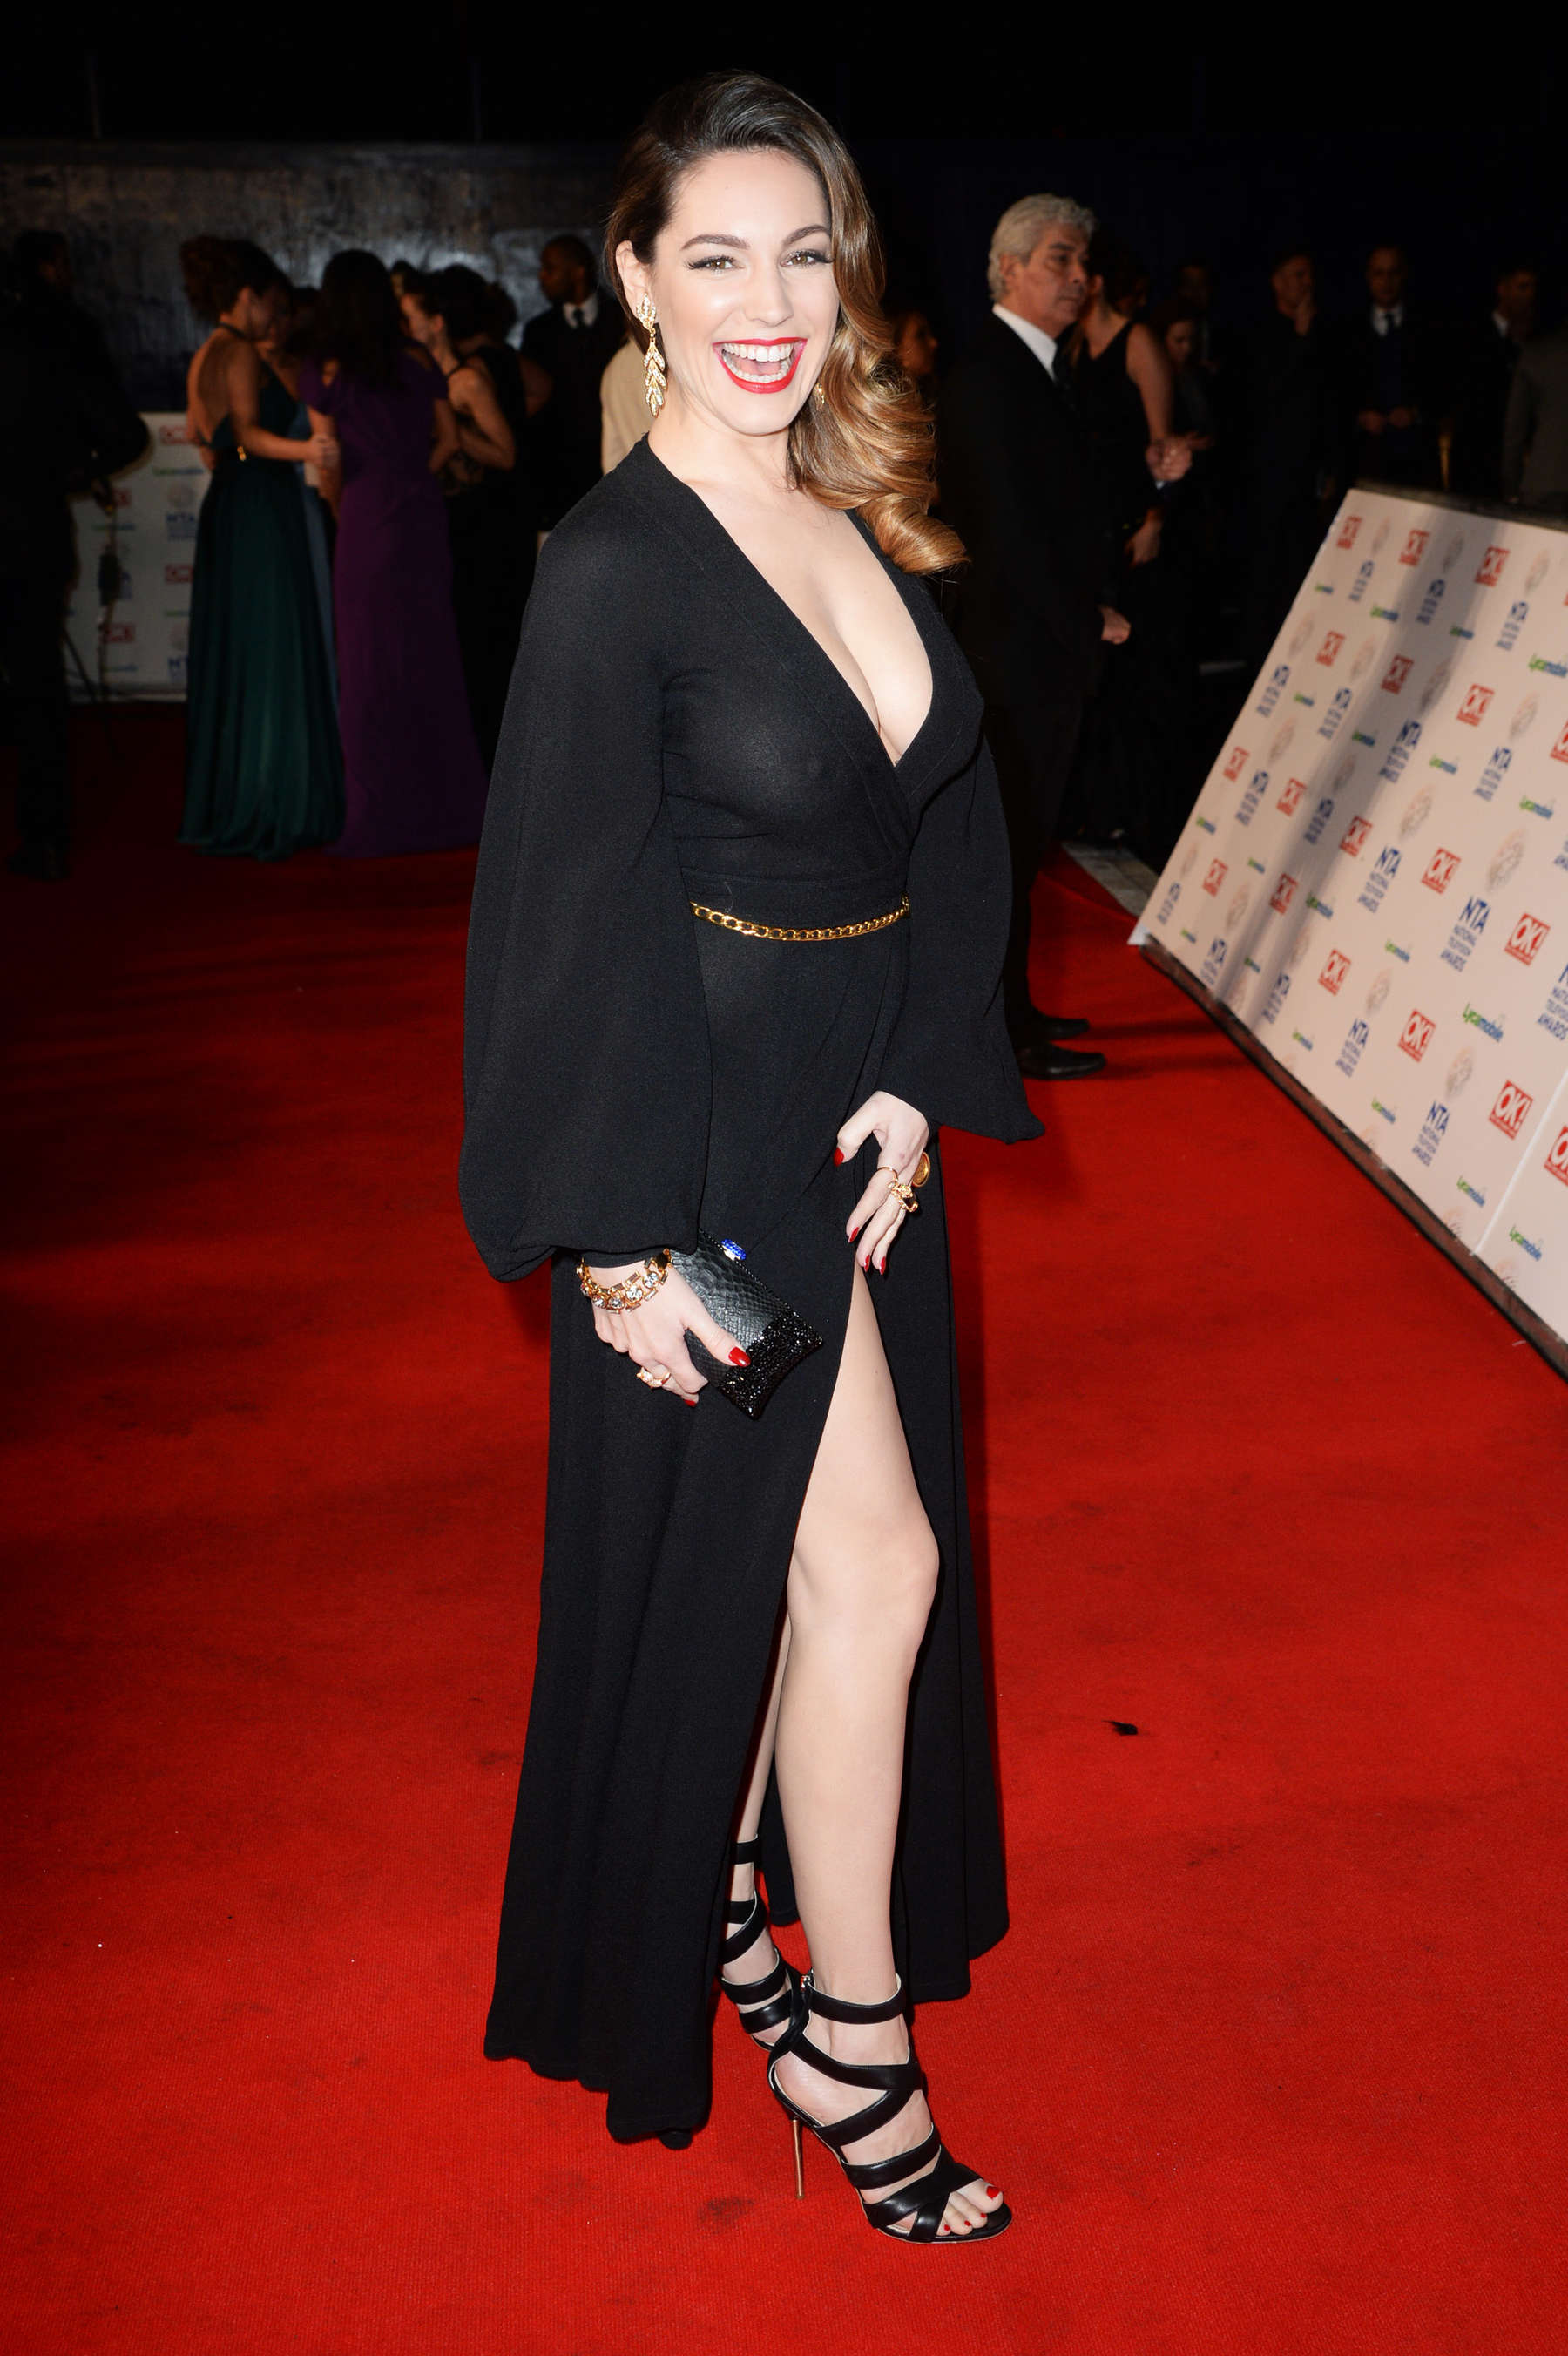 See Thru Tv See Through Kelly Brook National Television Awards In London